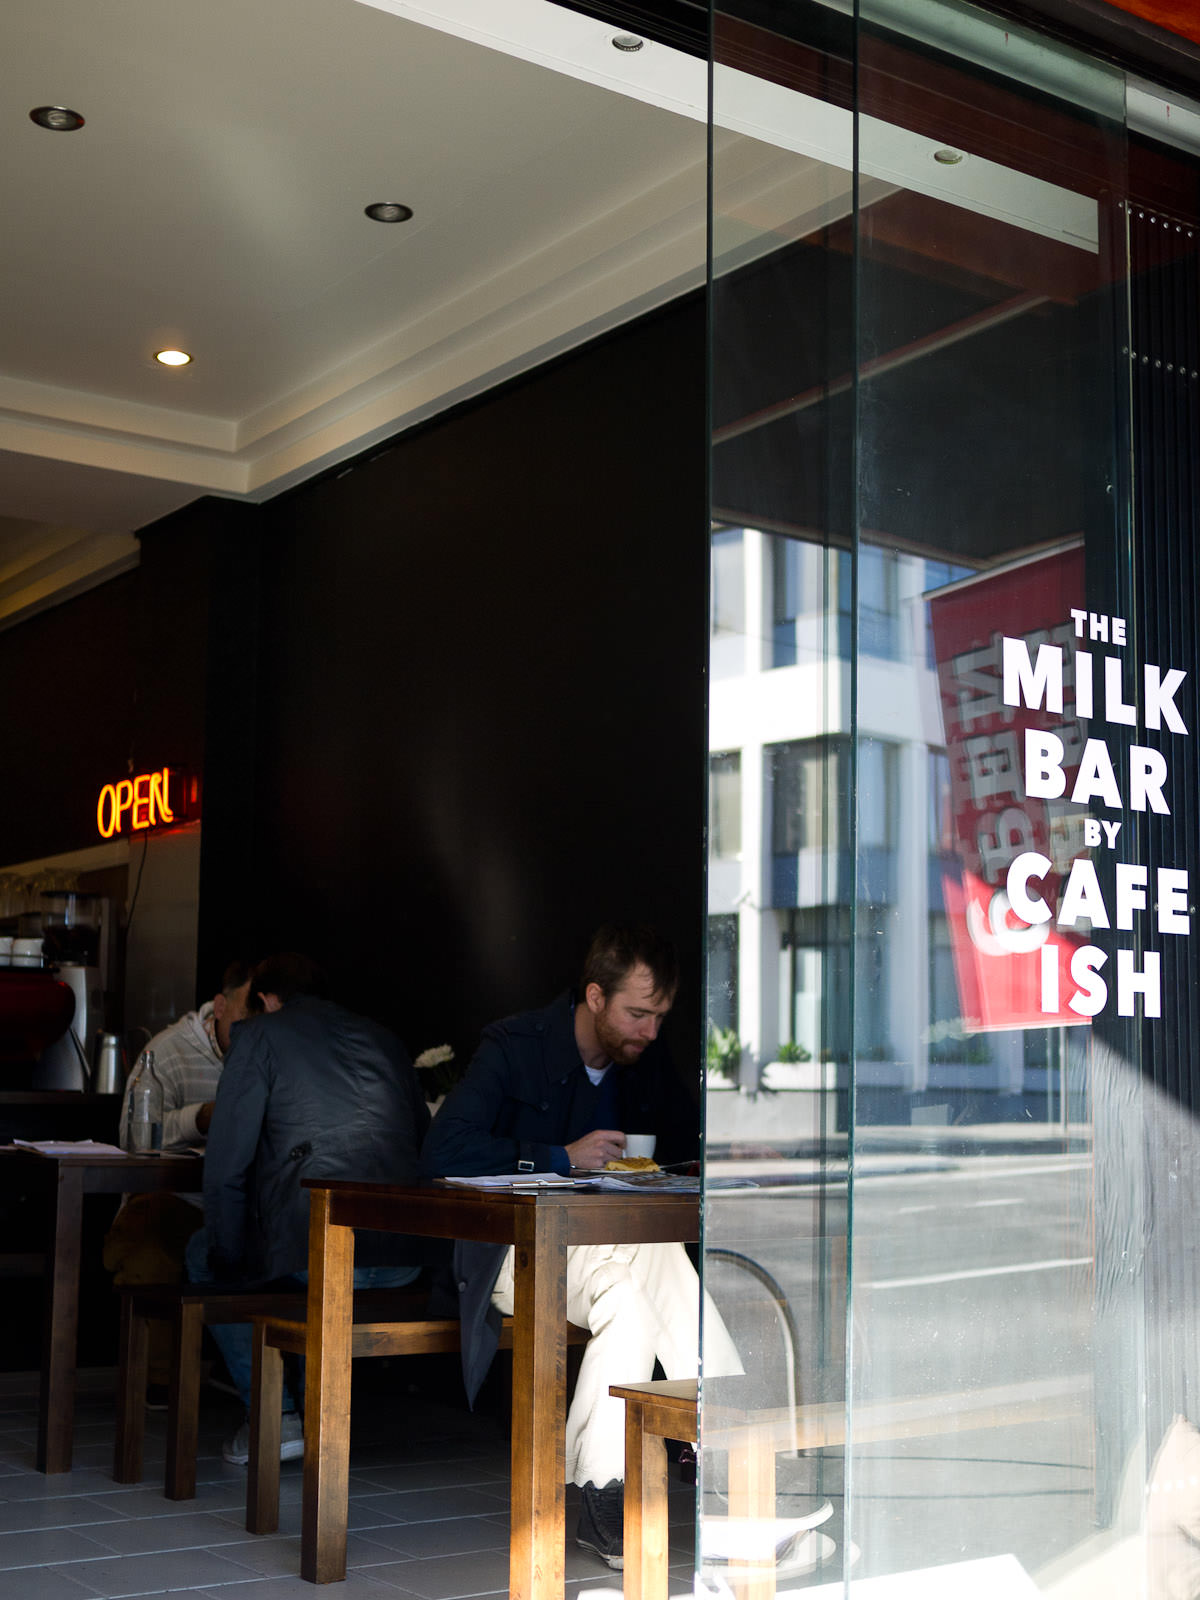 The Milk Bar by Cafe Ish - entrance